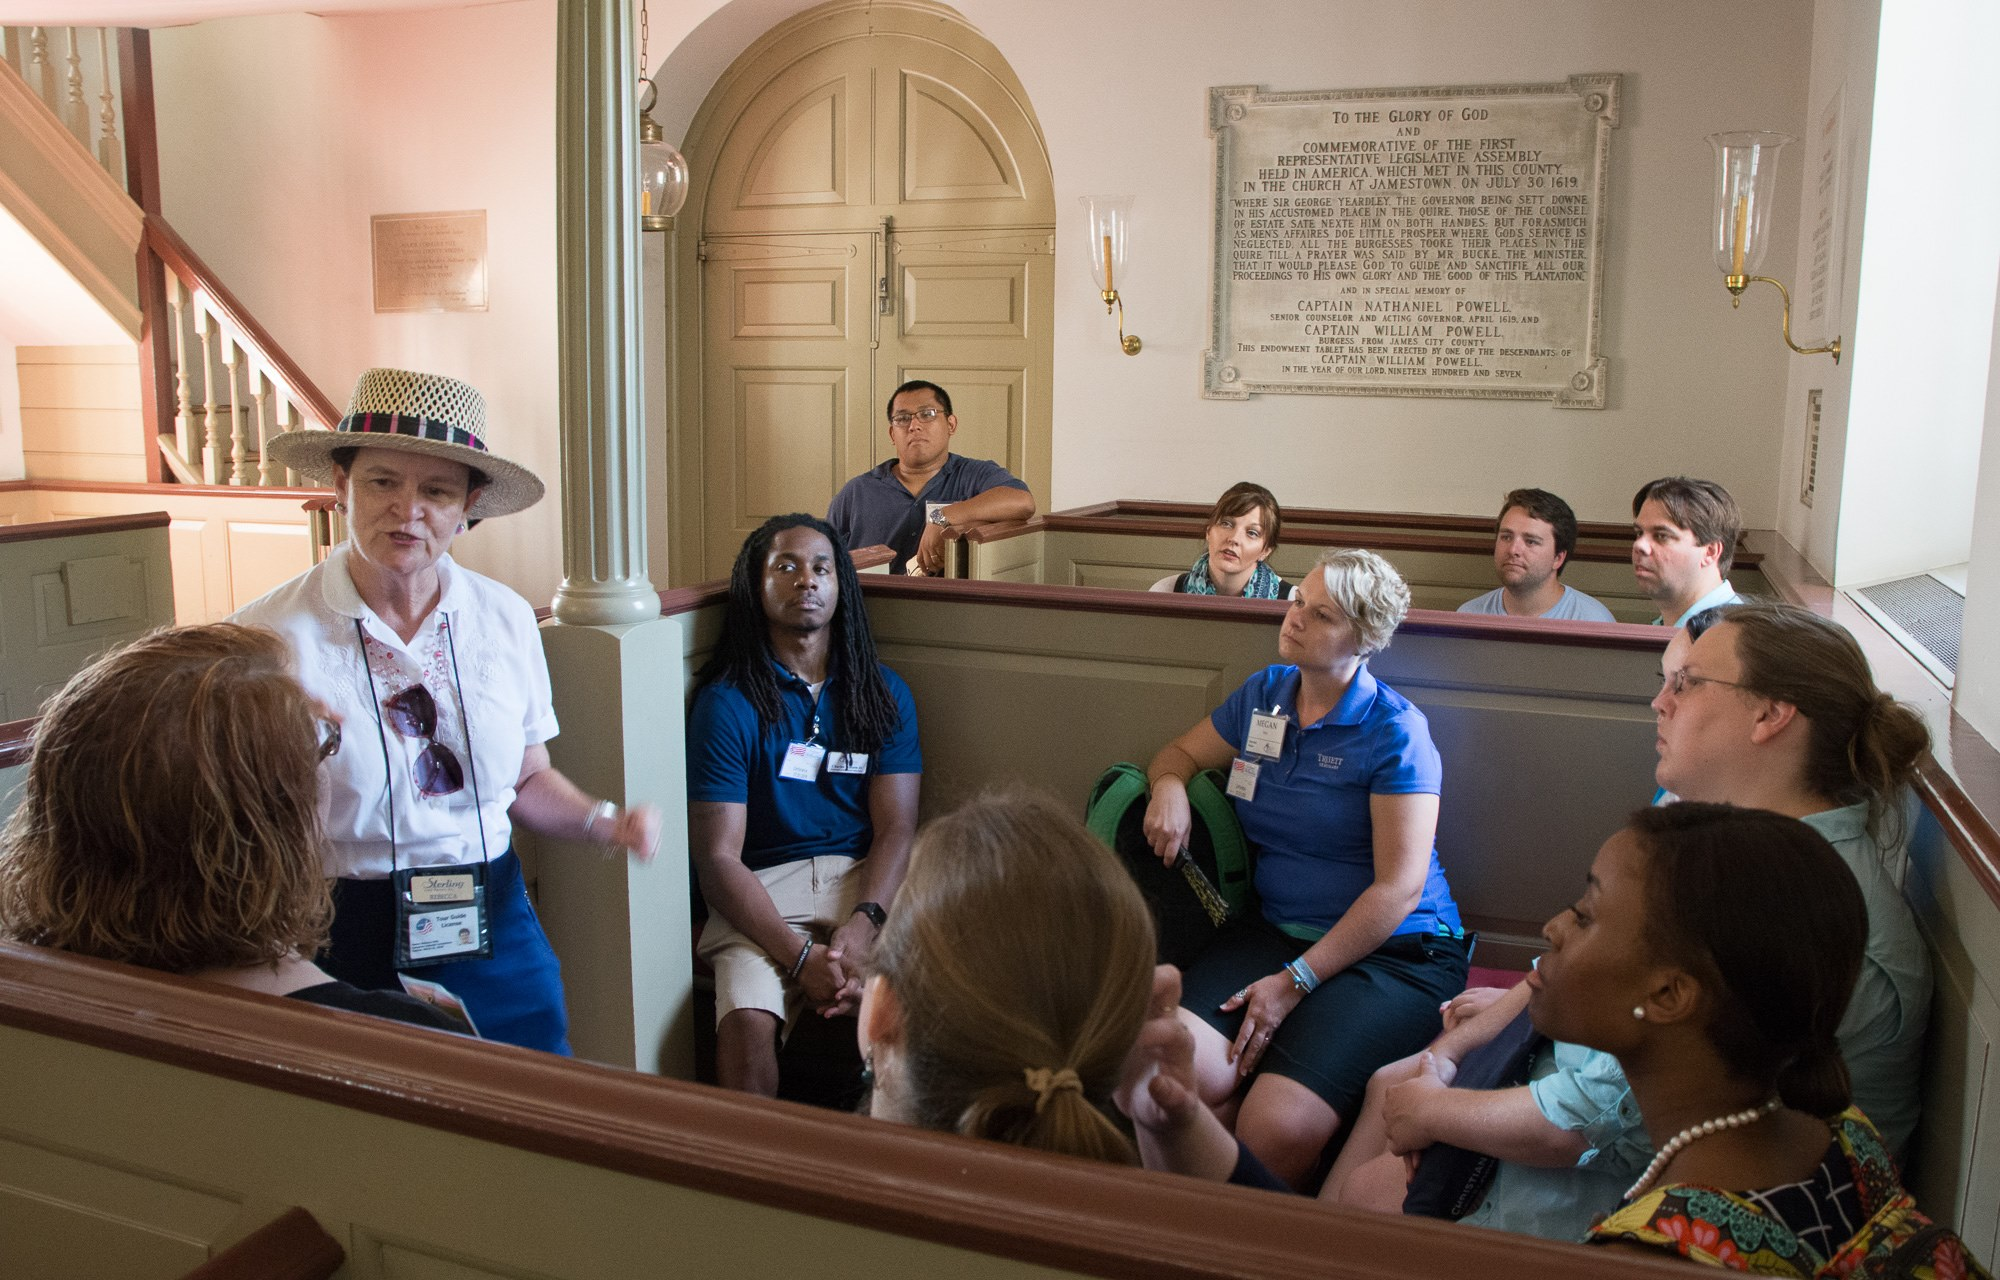 A tour guide shares with BJC Fellows about Bruton Parish Church. Like our group photographed here, p arishioners sat in boxed pews, their walls providing privacy and protection from the elements.